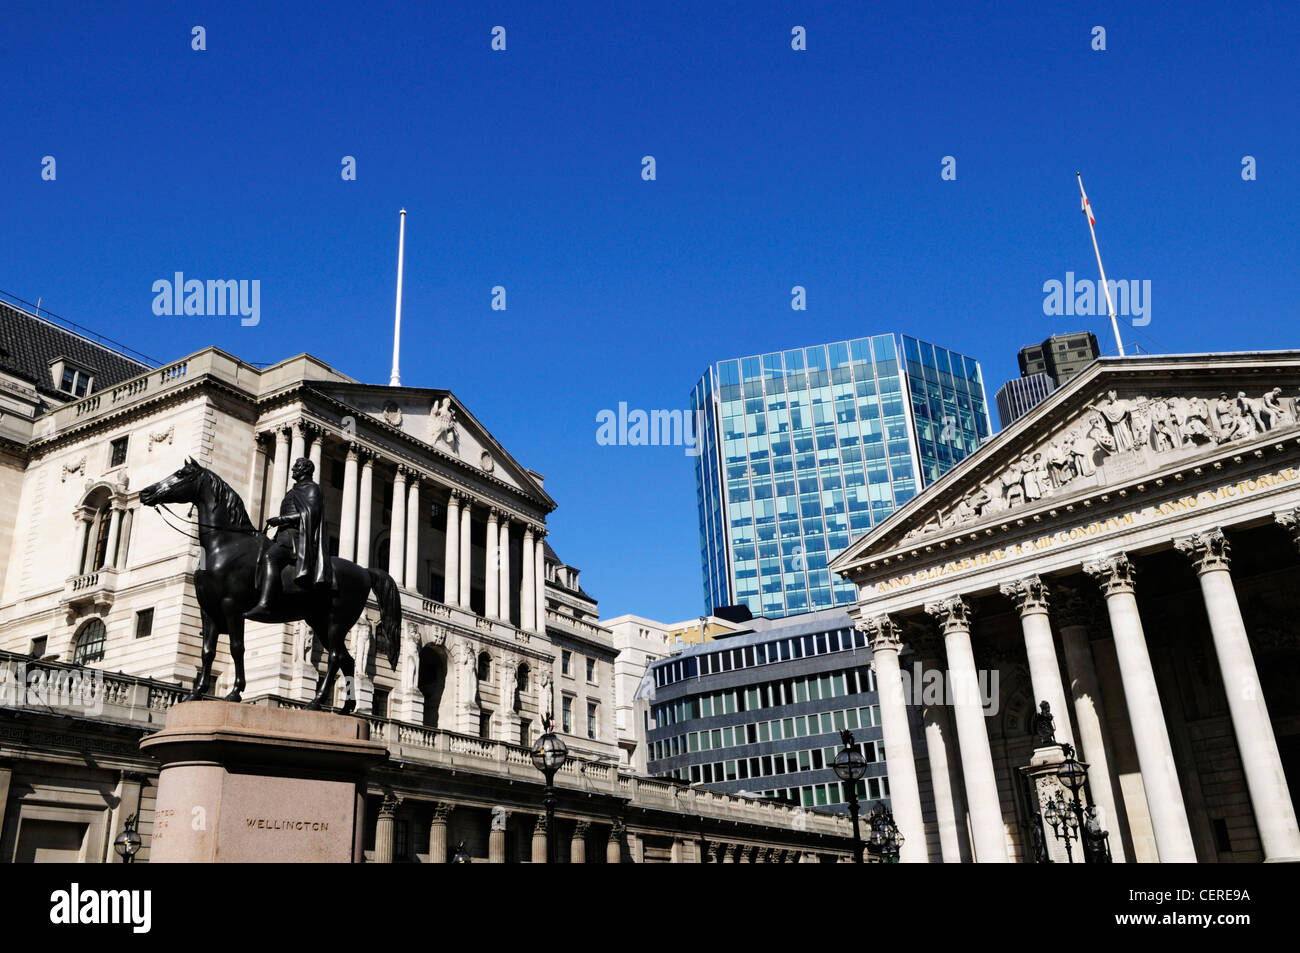 Statue of Wellington, The Bank of England, and The Royal Exchange in Threadneedle Street in the City of London. - Stock Image